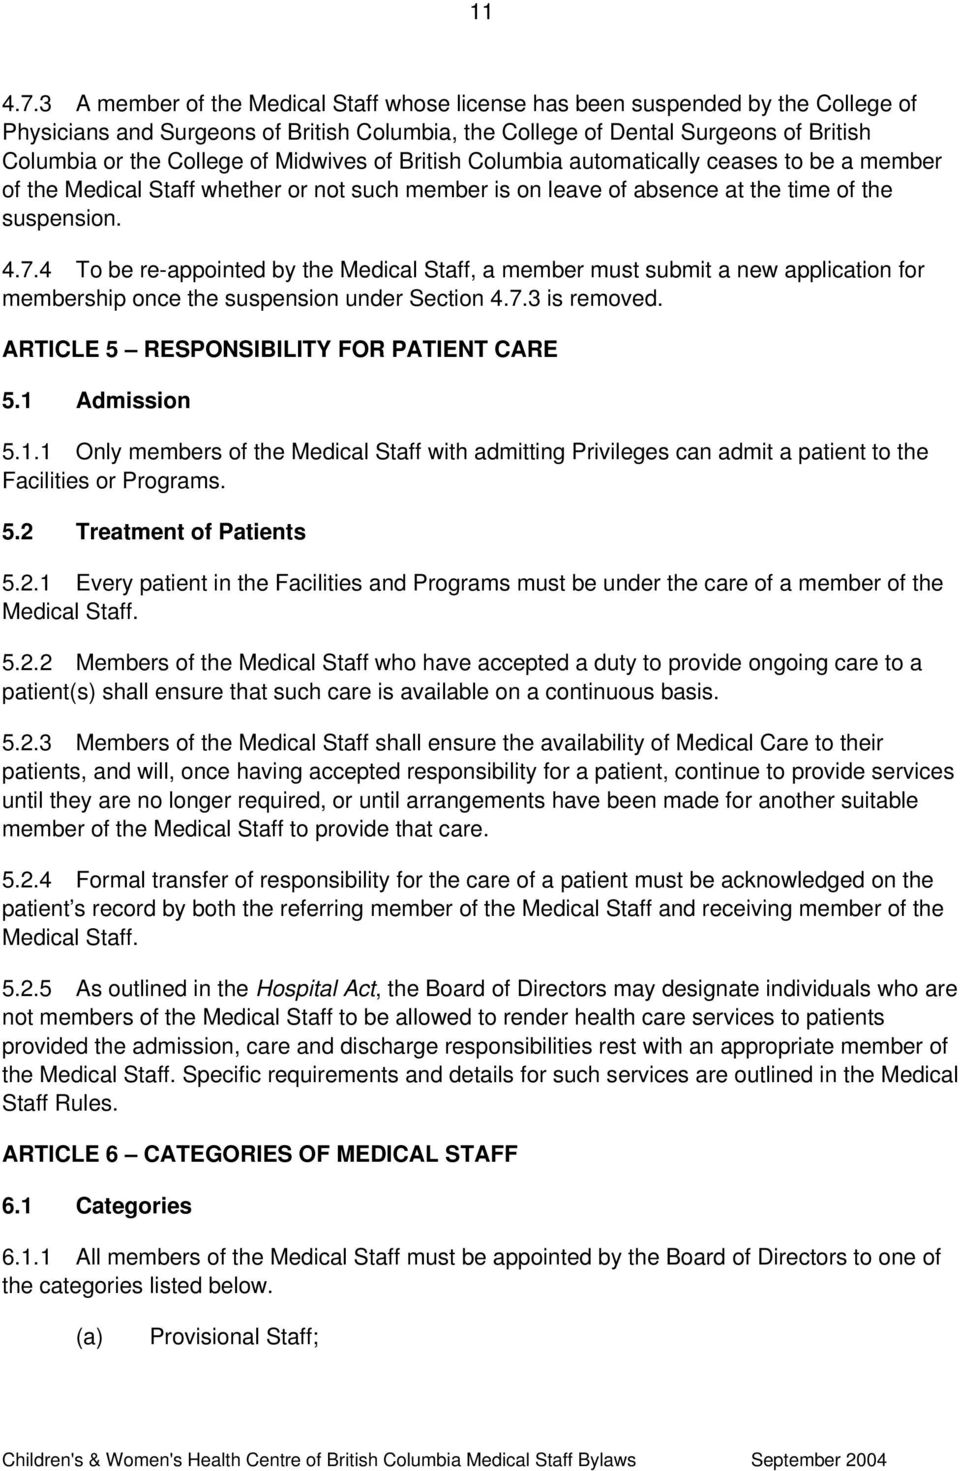 Midwives of British Columbia automatically ceases to be a member of the Medical Staff whether or not such member is on leave of absence at the time of the suspension. 4.7.